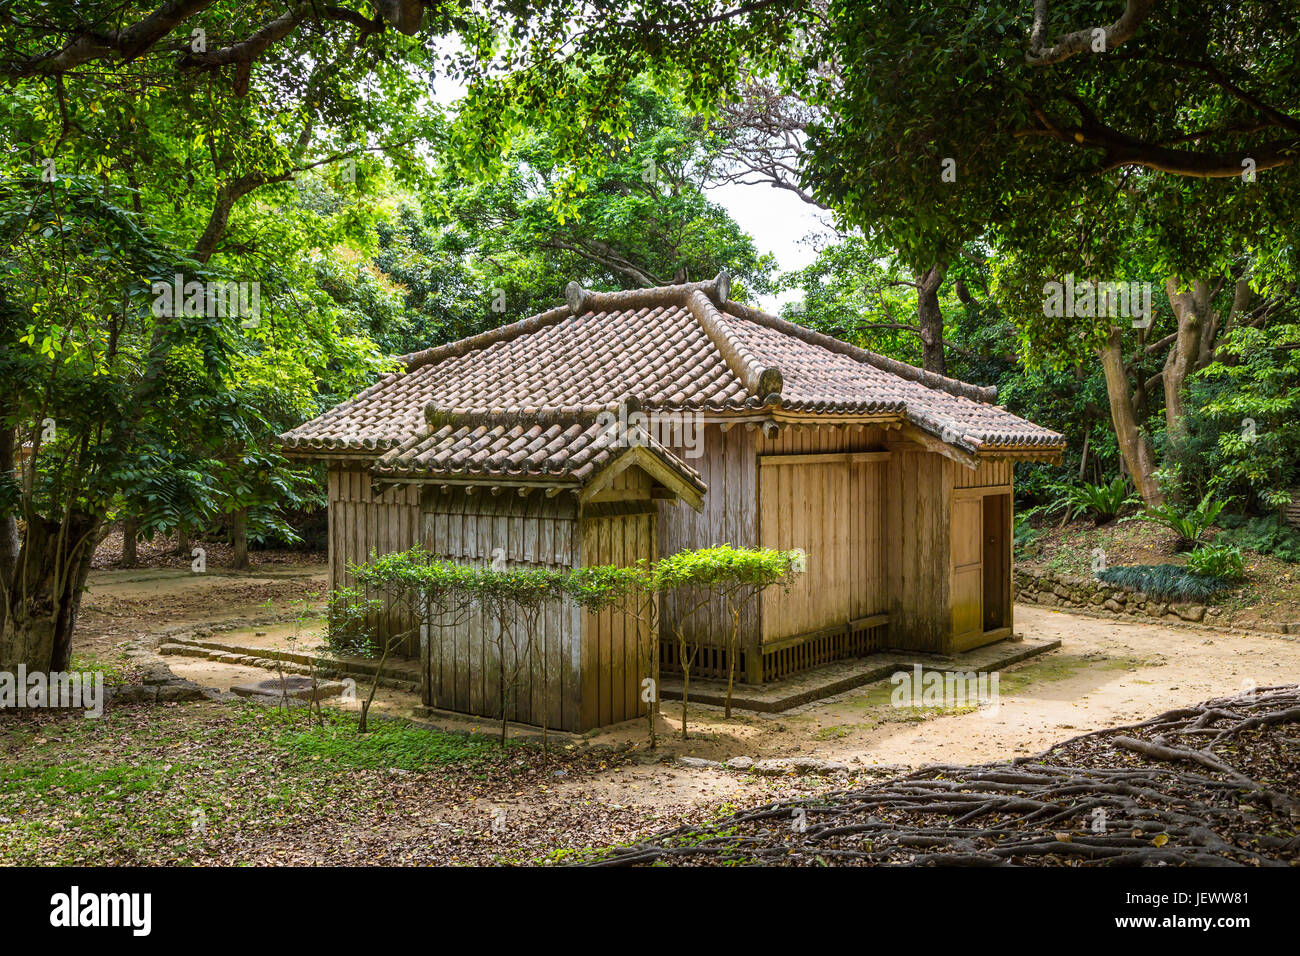 Japanese architecture at the Shurijo Castle in Naha, Okinawa, Japan. - Stock Image